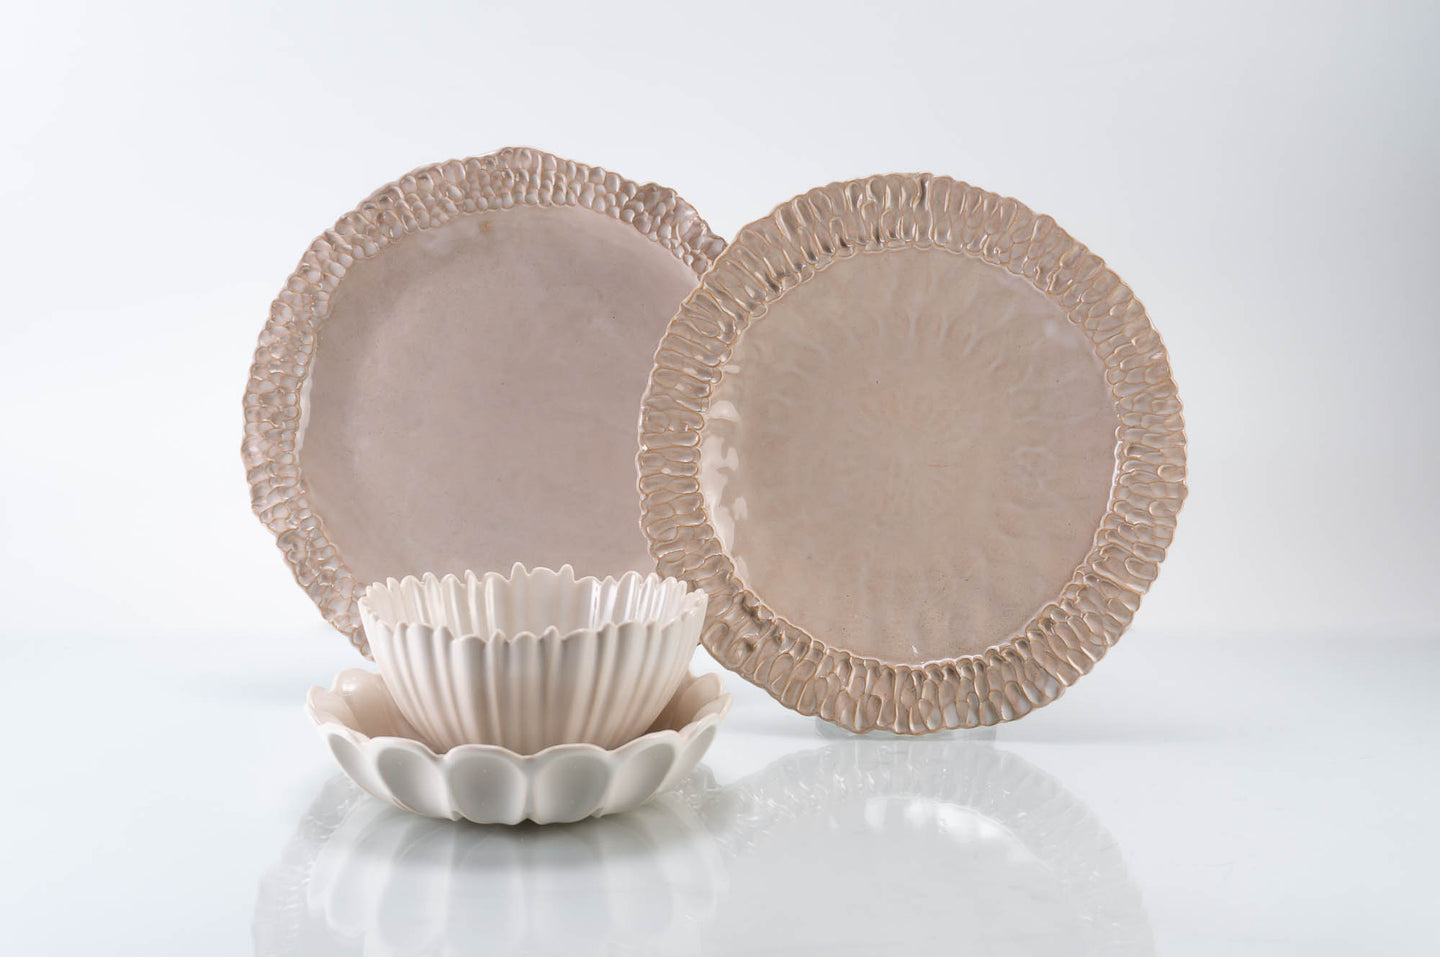 Textured Rim 4-Piece Place Setting | Table Setting